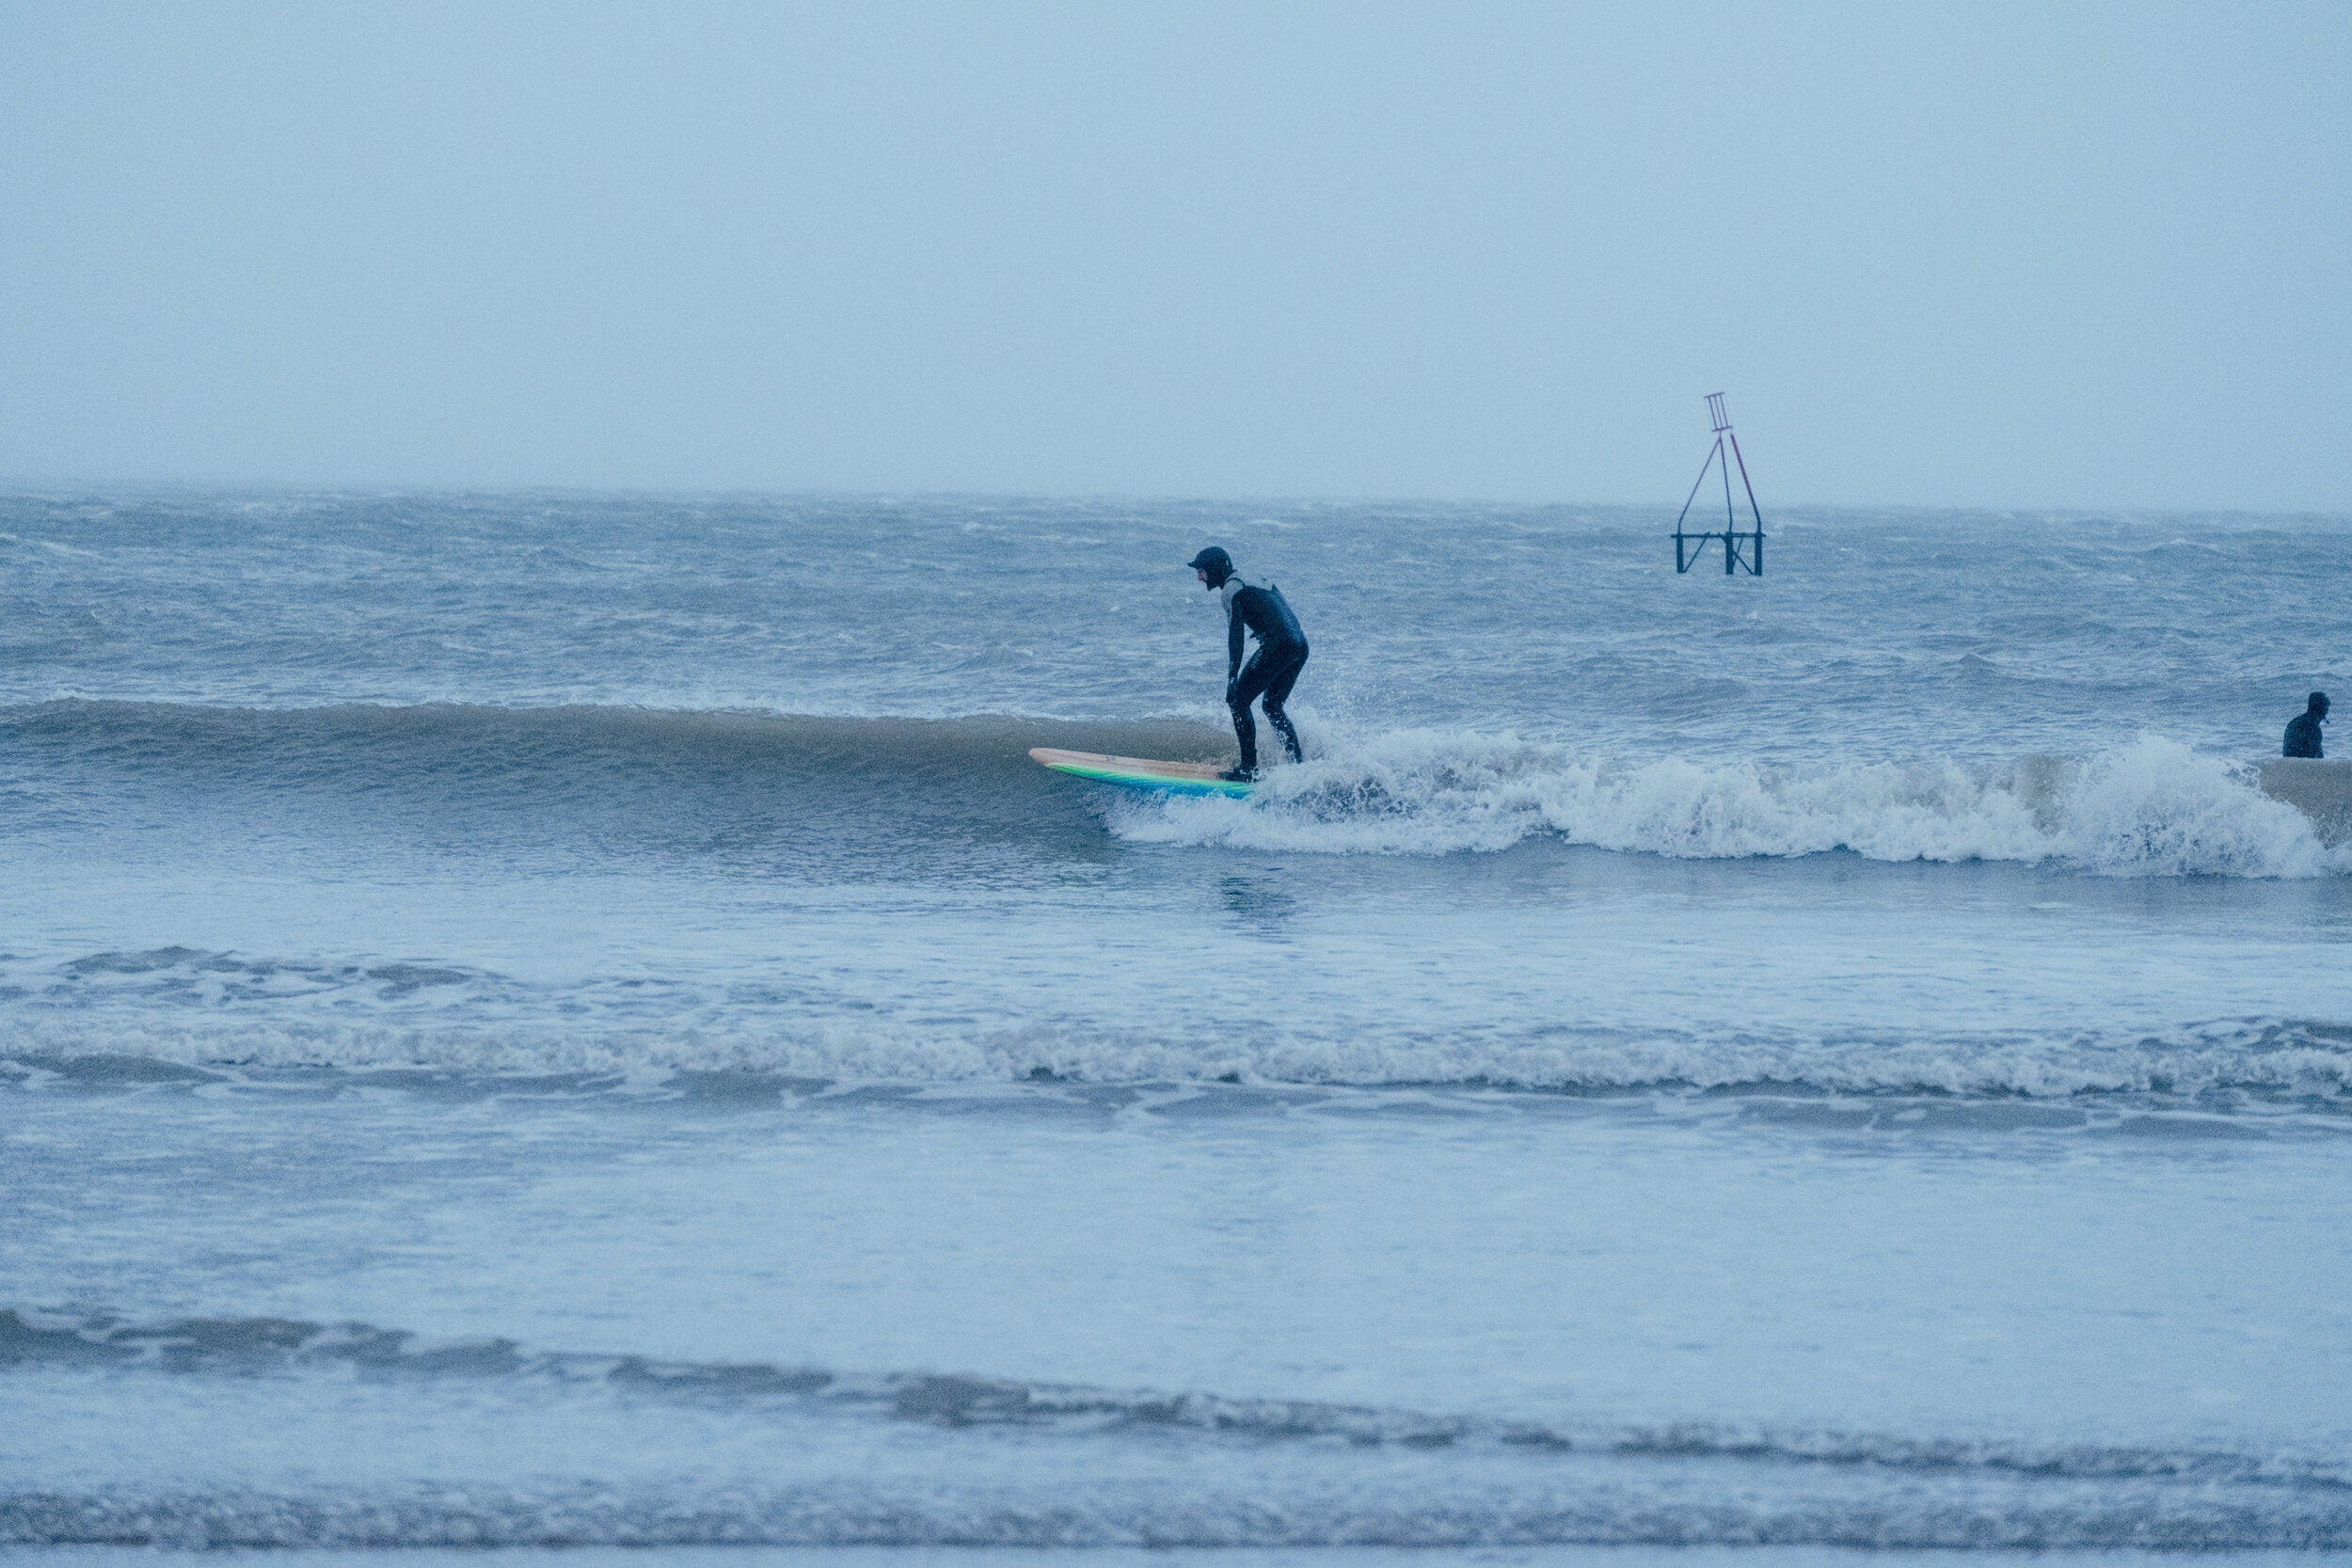 Craig Hyde surfing in north wales